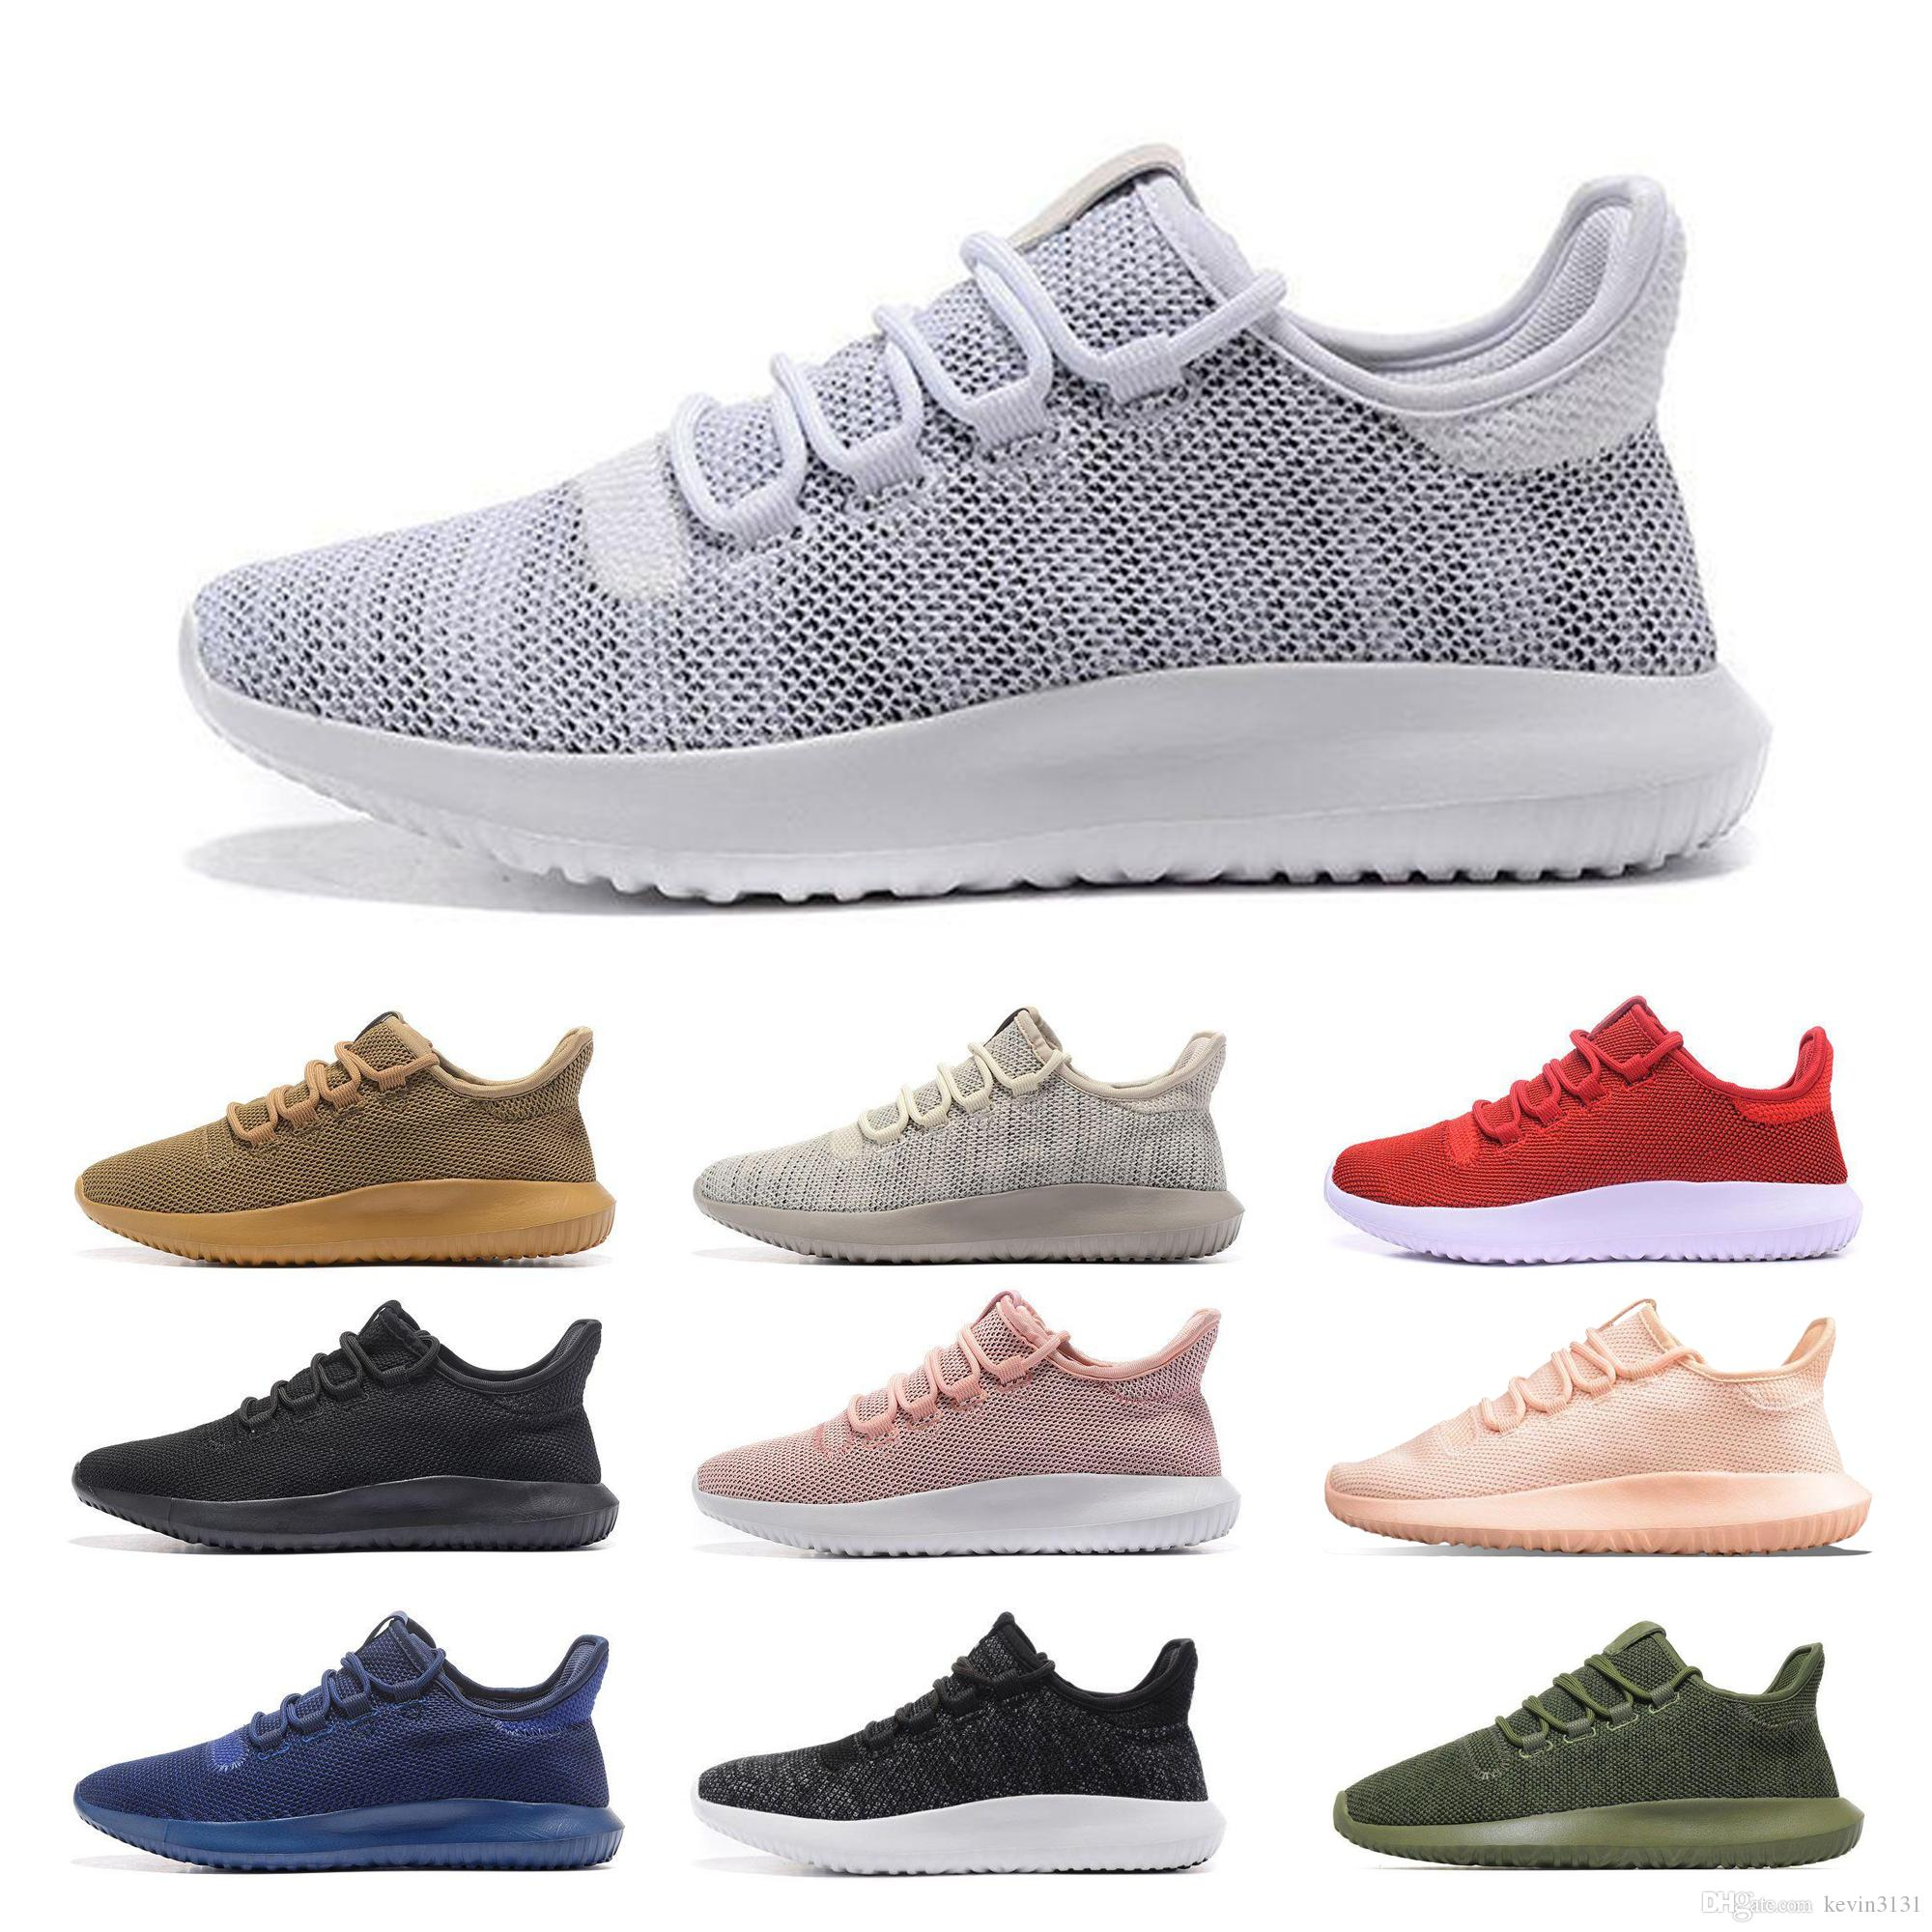 size 40 95398 35aeb Cheap Tubular Shadow Knit Ultra 2019 Mens Running Designer Shoes Women  Casual Outdoor Trainer Sports Best Hiking Jogging Sneakers Size 36-